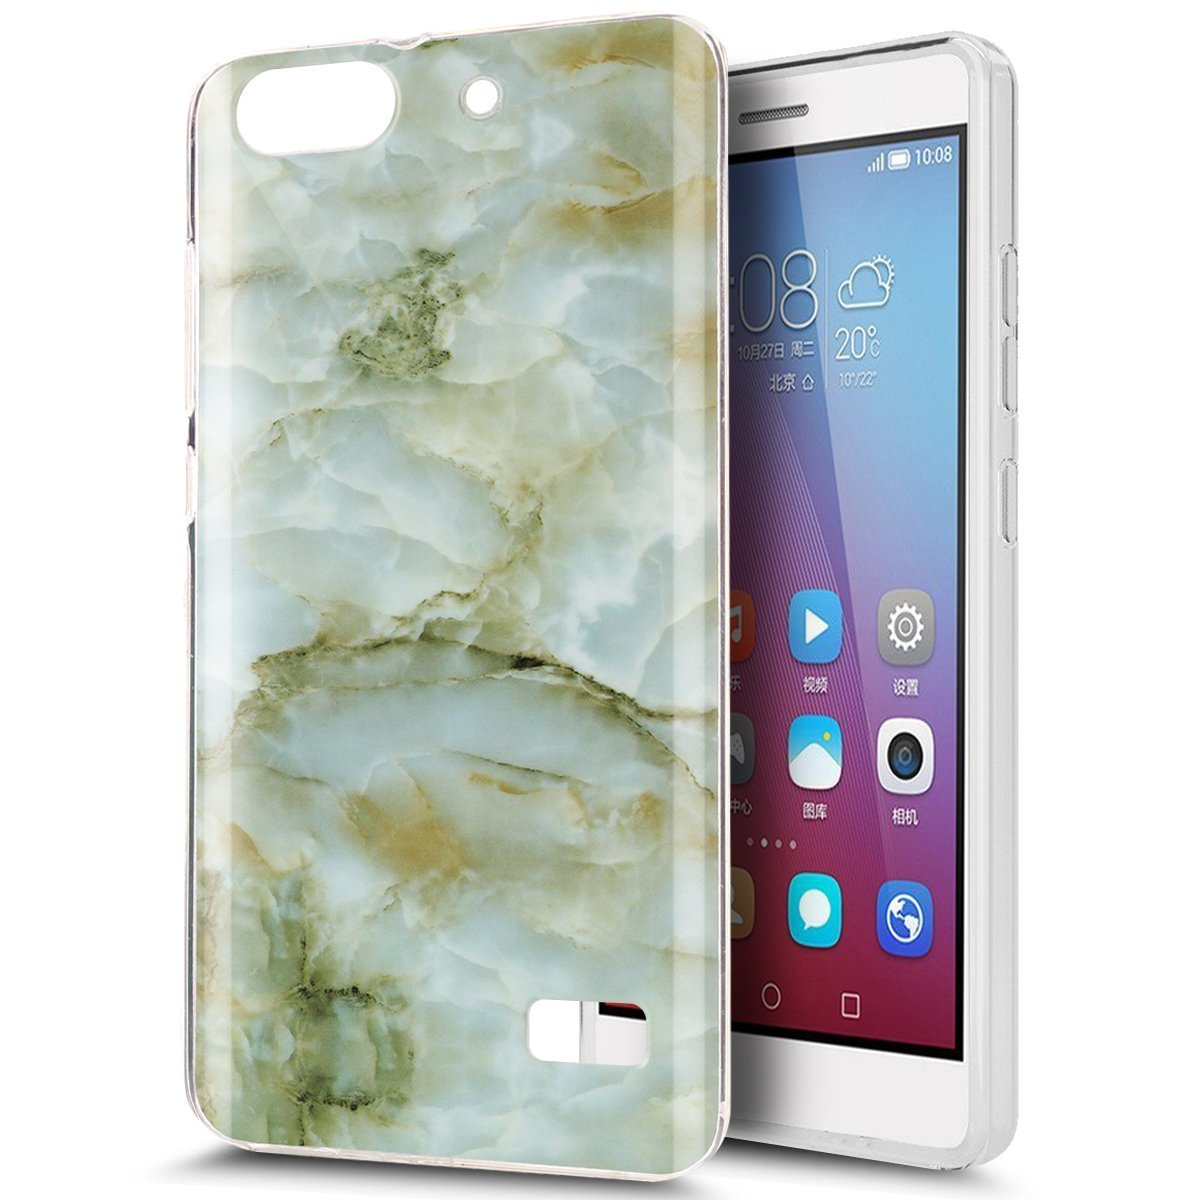 Huawei Honor 4C Case,Huawei G Play Mini Case,ikasus Glossy Marble Ultra Slim Thin Flexible Soft Silicone TPU Bumper Rubber Protective Case for Huawei G Play Mini / Honor 4C - Green